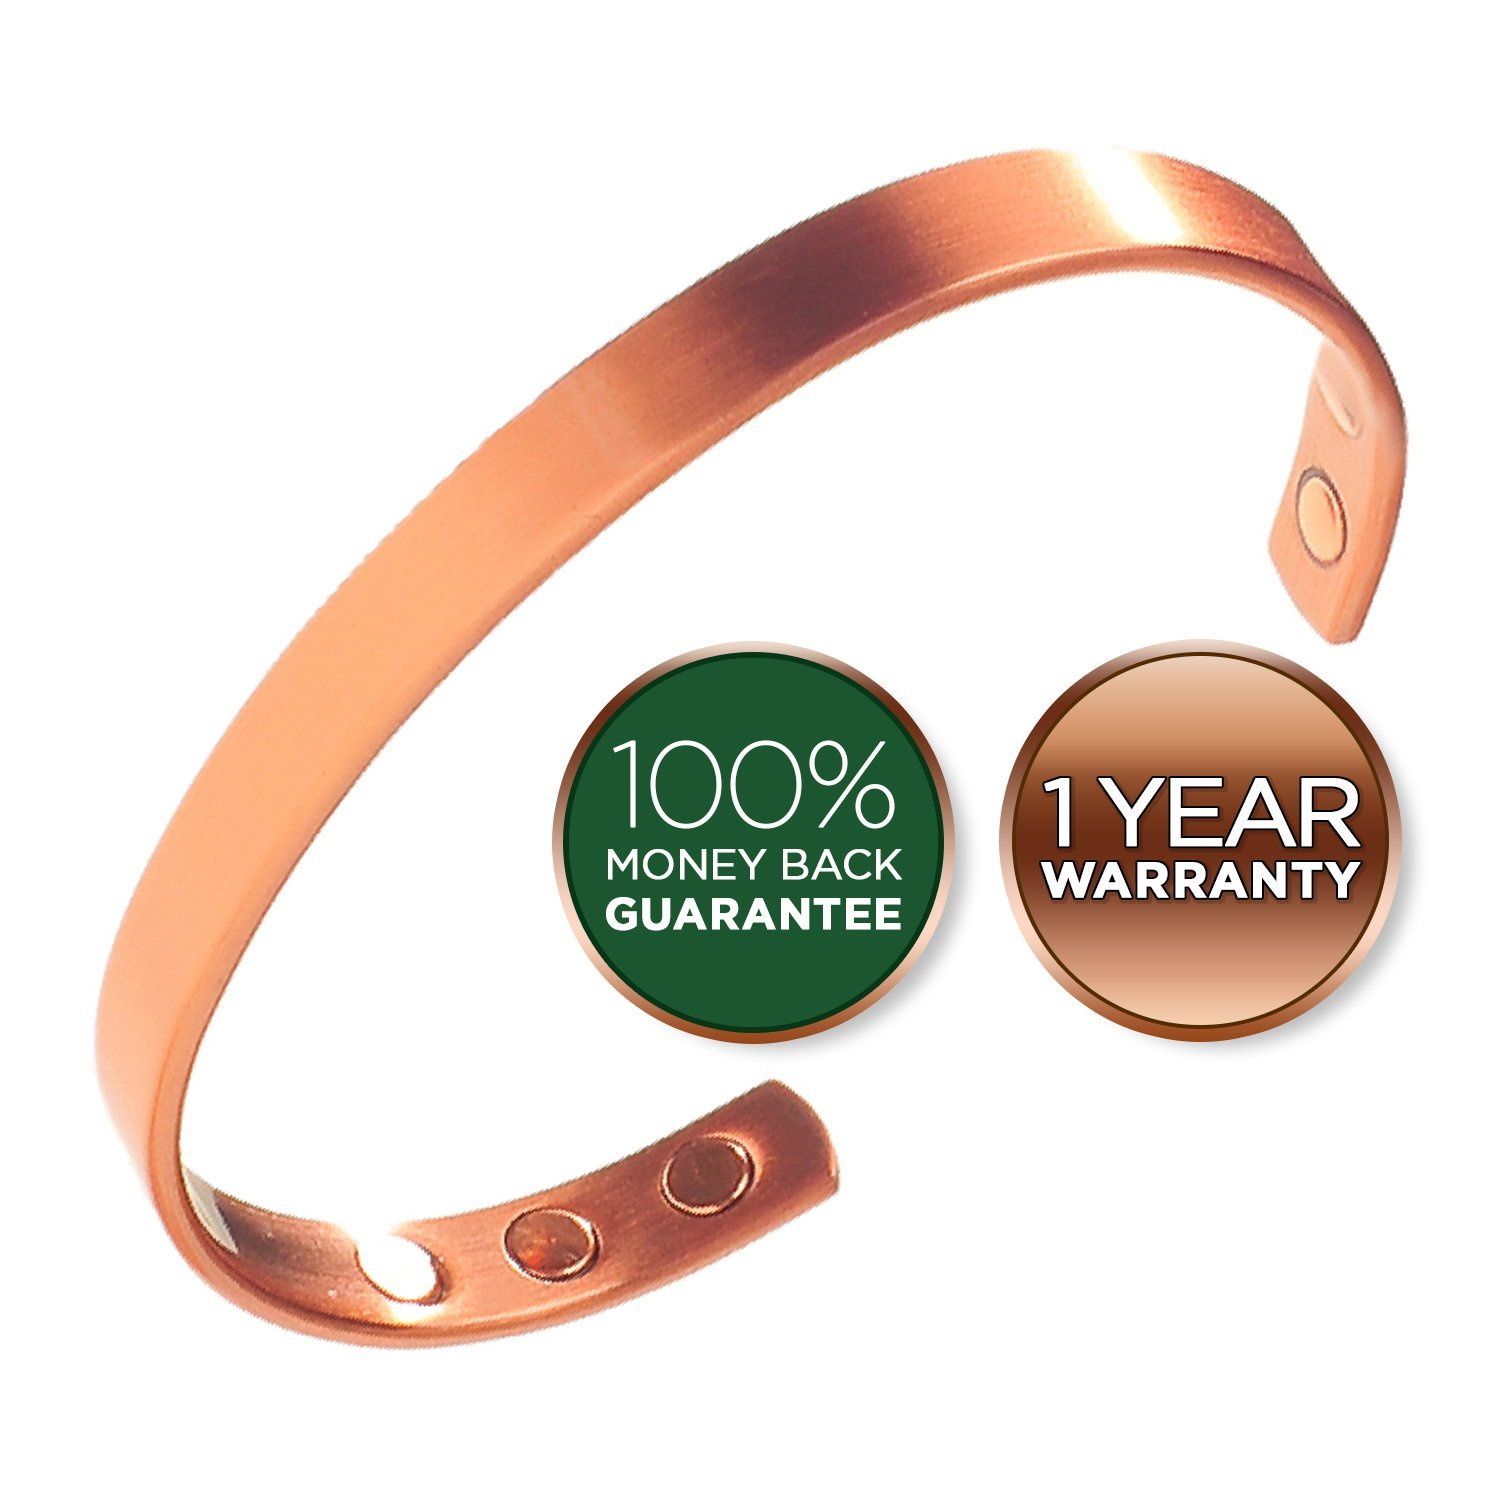 Earth Therapy Pure Copper Magnetic Bracelet